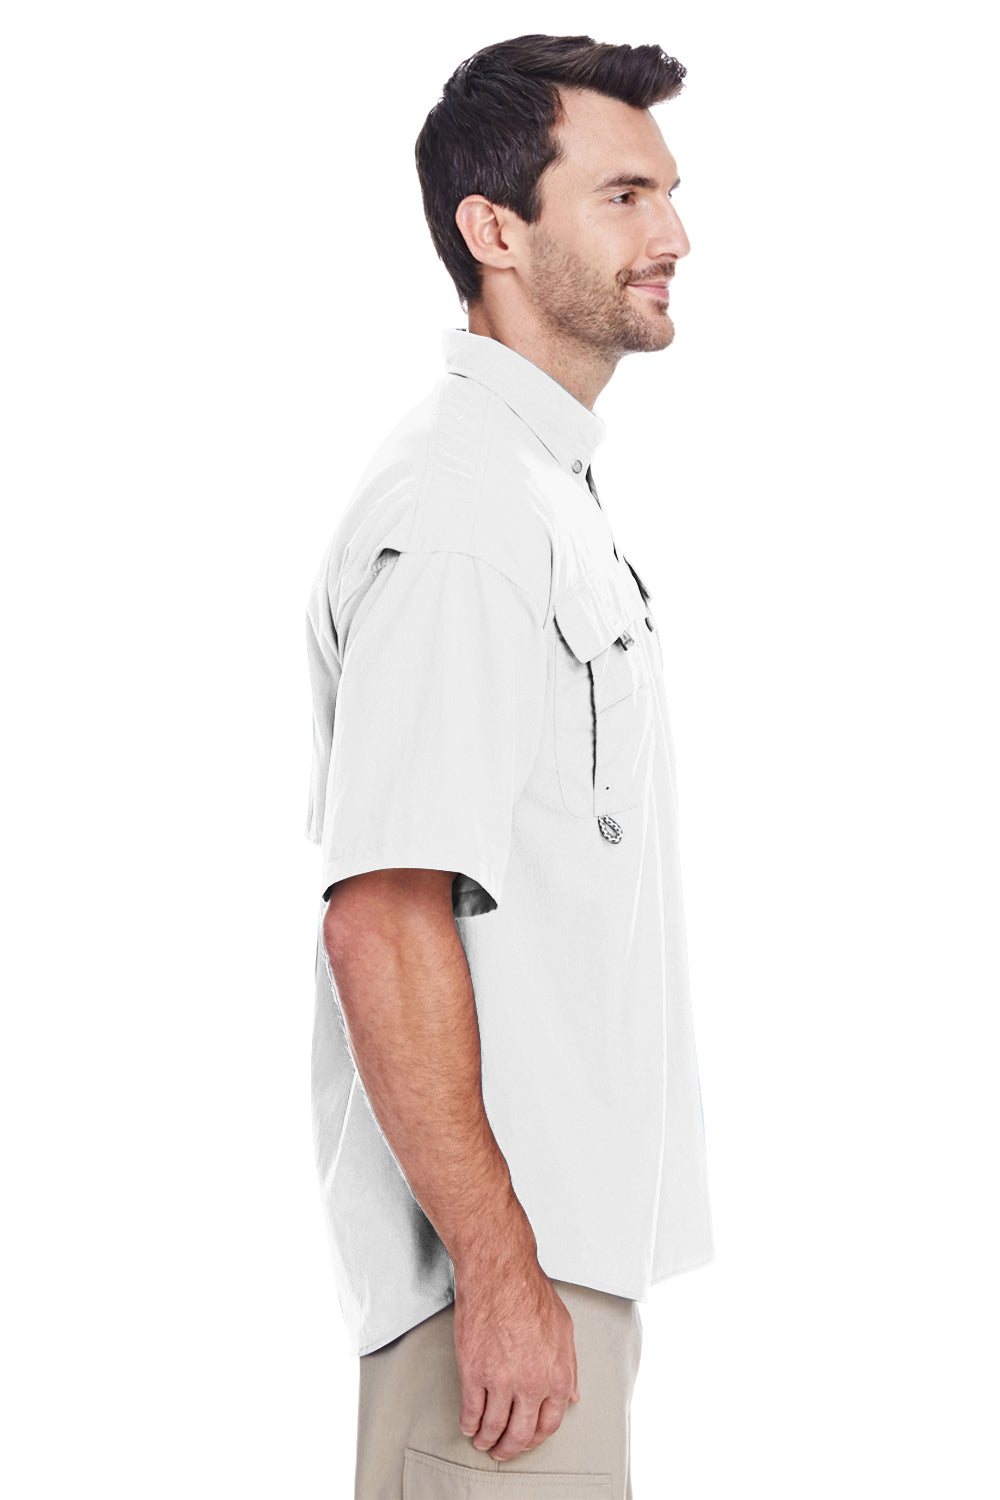 Columbia 7047 Mens Bahama II Moisture Wicking Short Sleeve Button Down Shirt w/ Double Pockets White Side